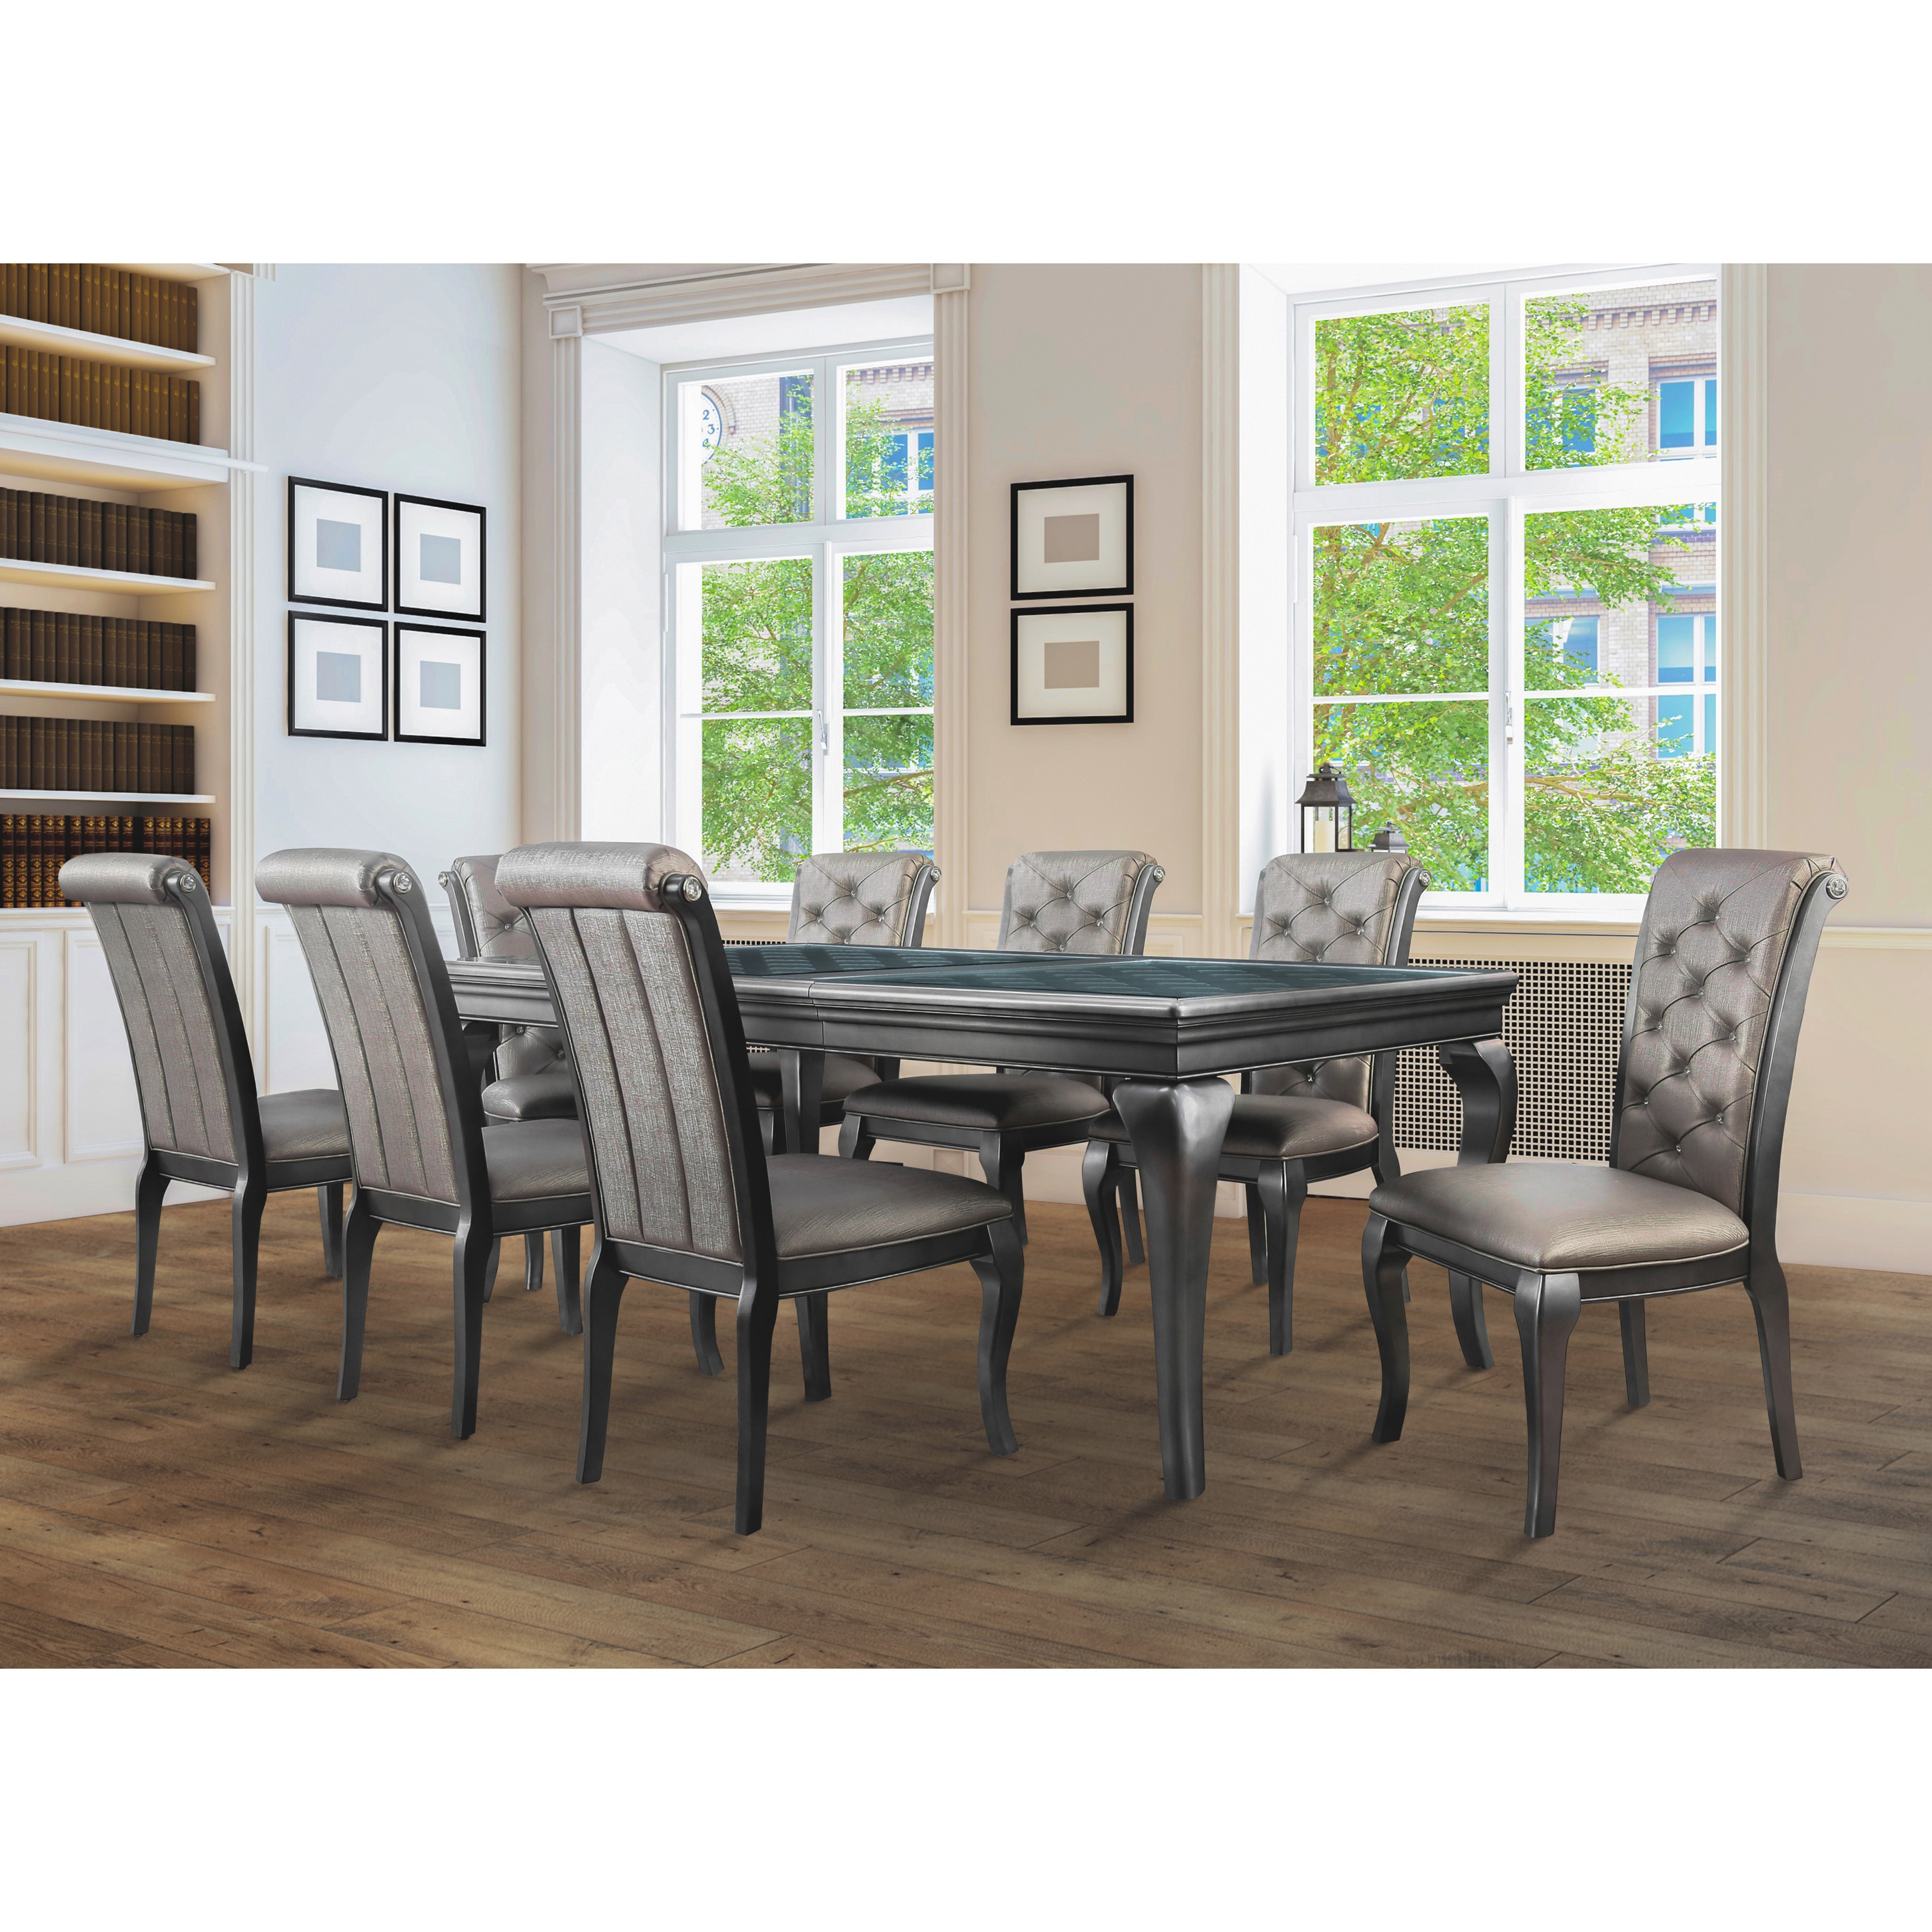 Furniture of America Mora Glam Silver Solid Wood 9 piece Dining Set